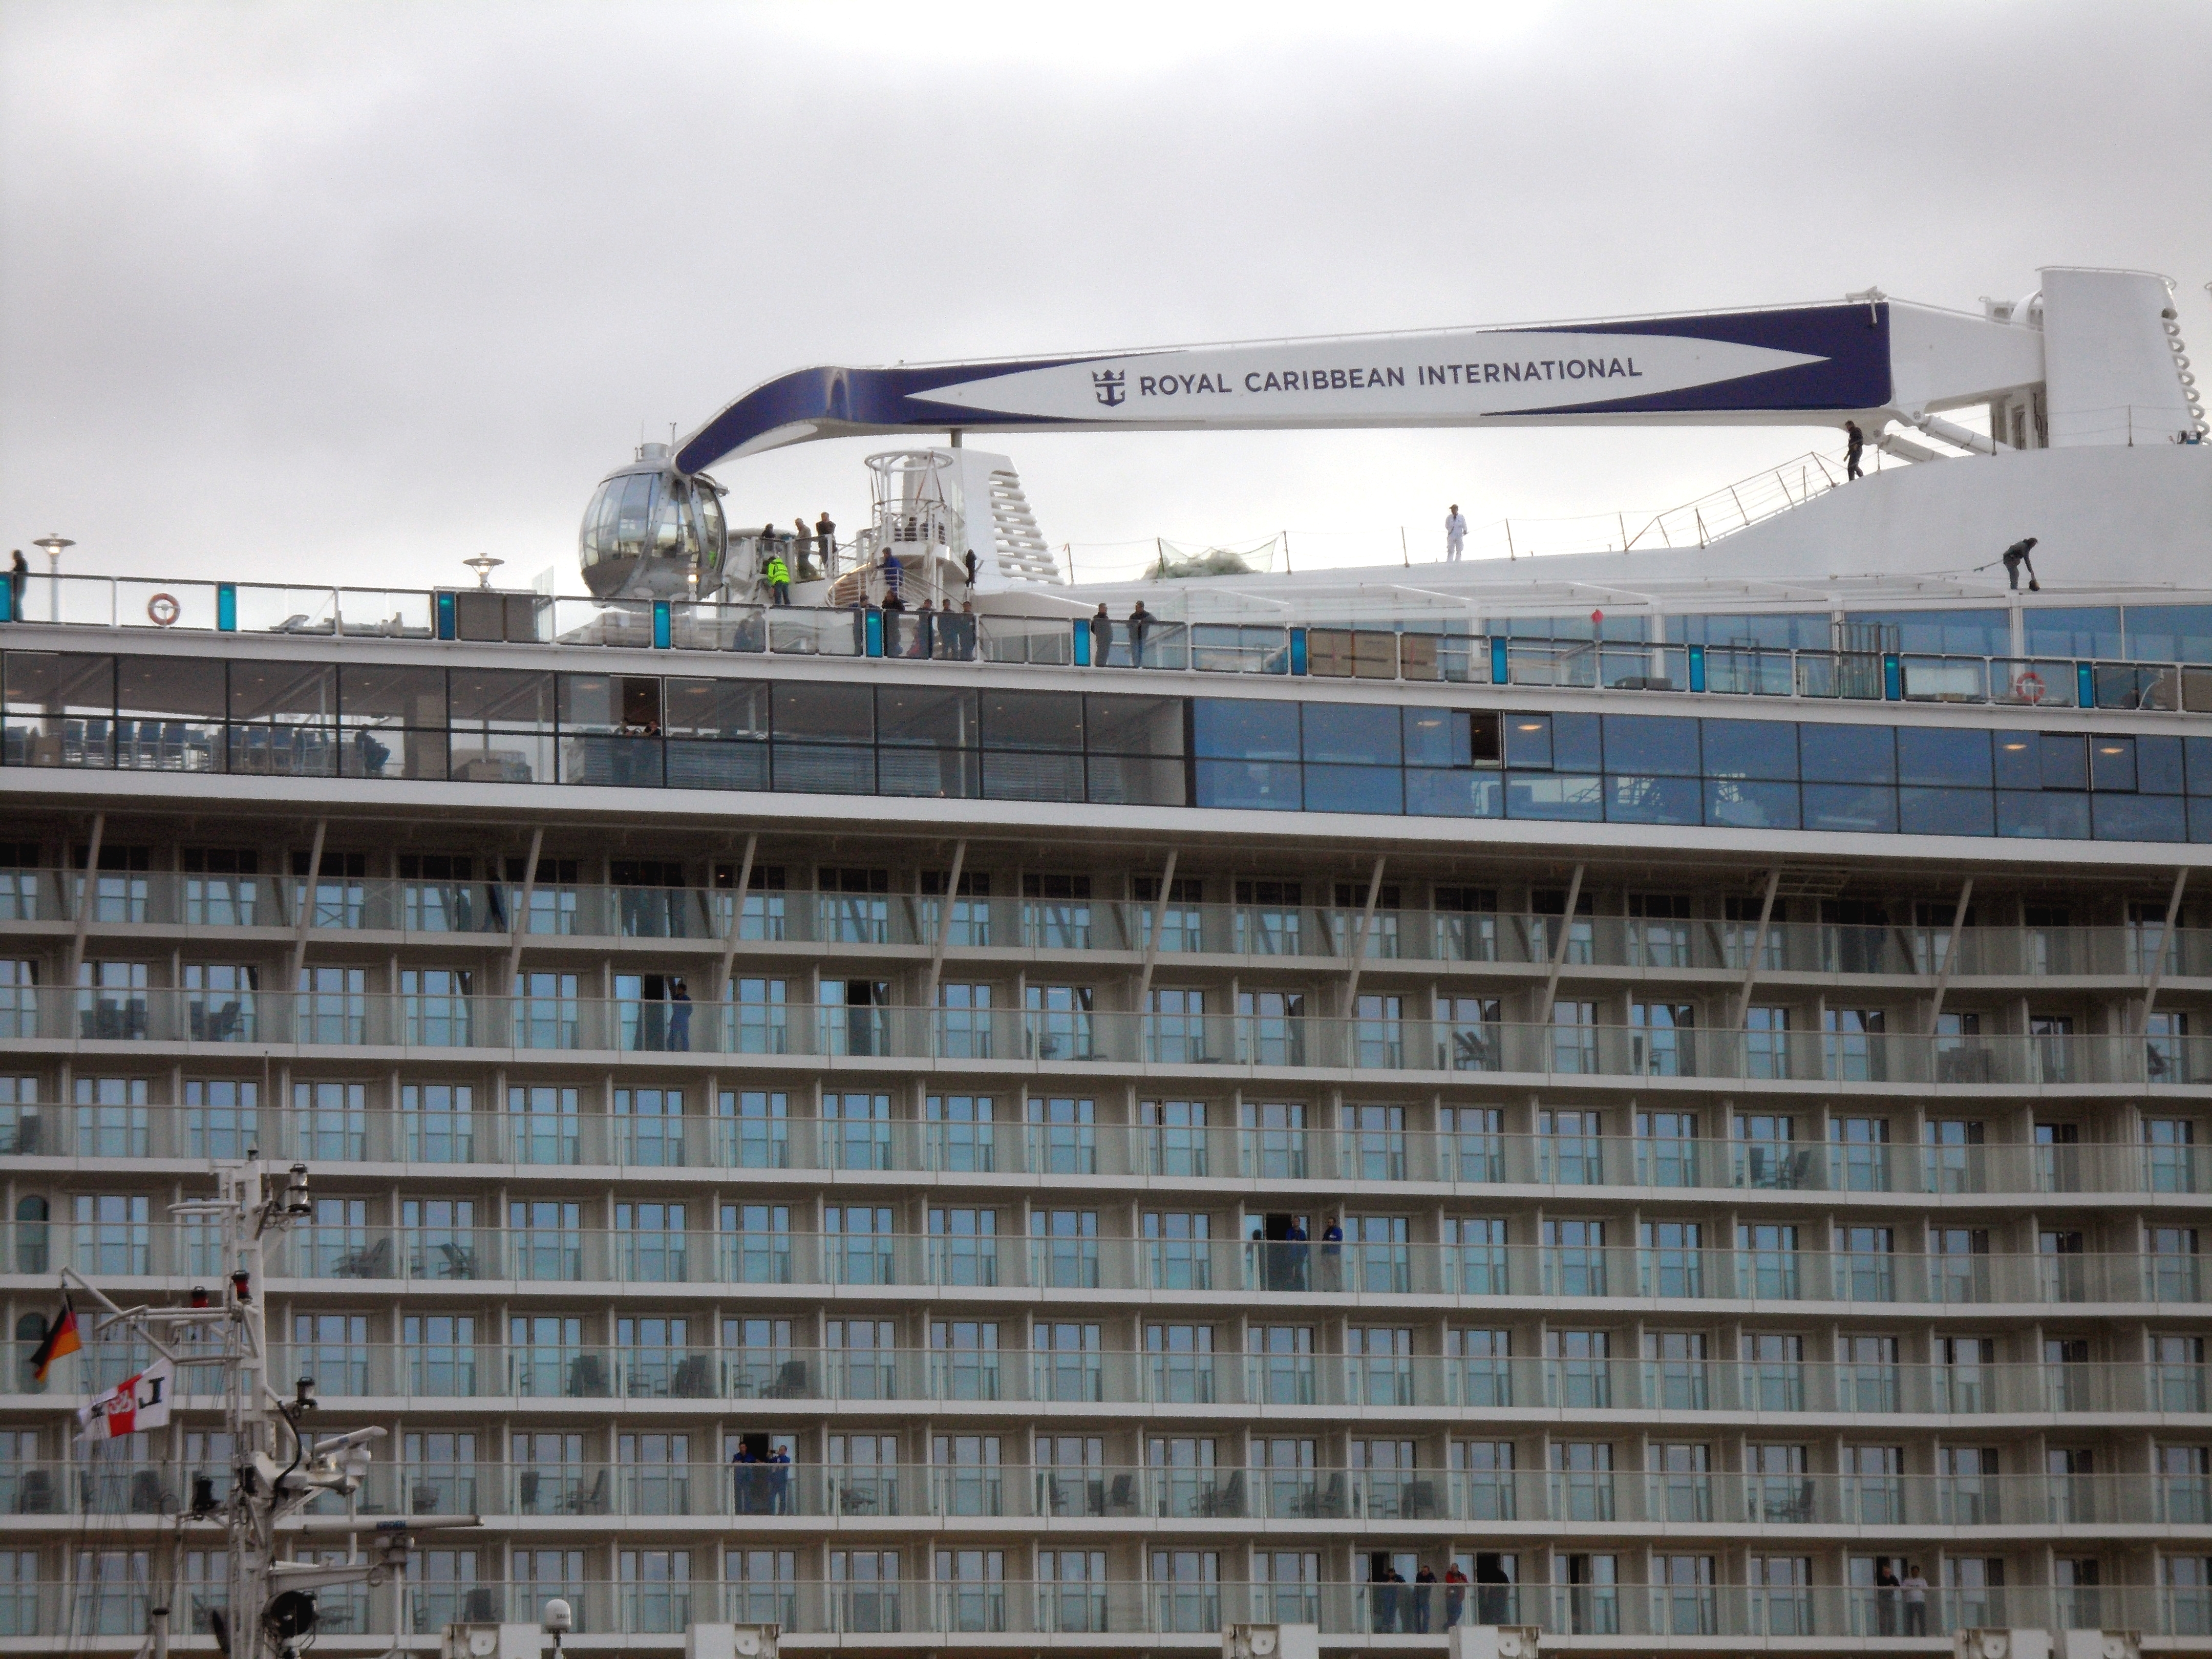 FileThe New Cruise Ship Quantum Of The Sea With The